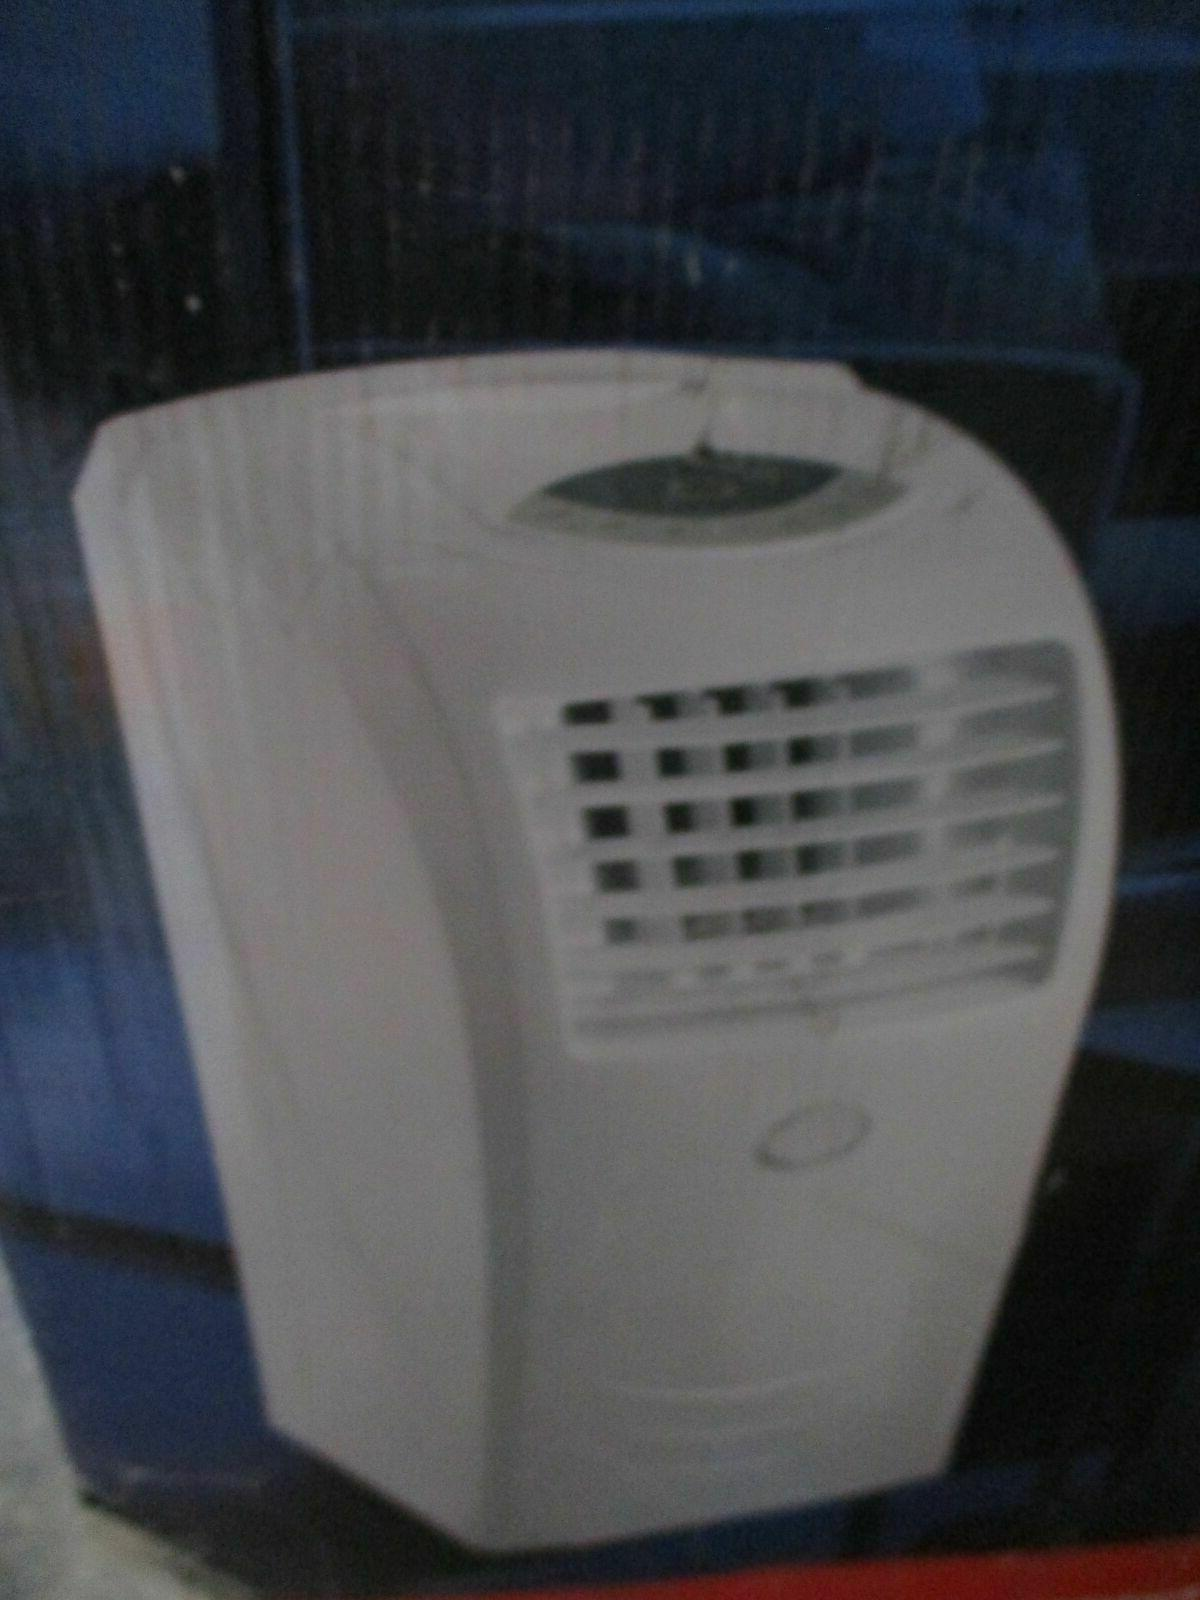 Global Air Portable Air Conditioner wit